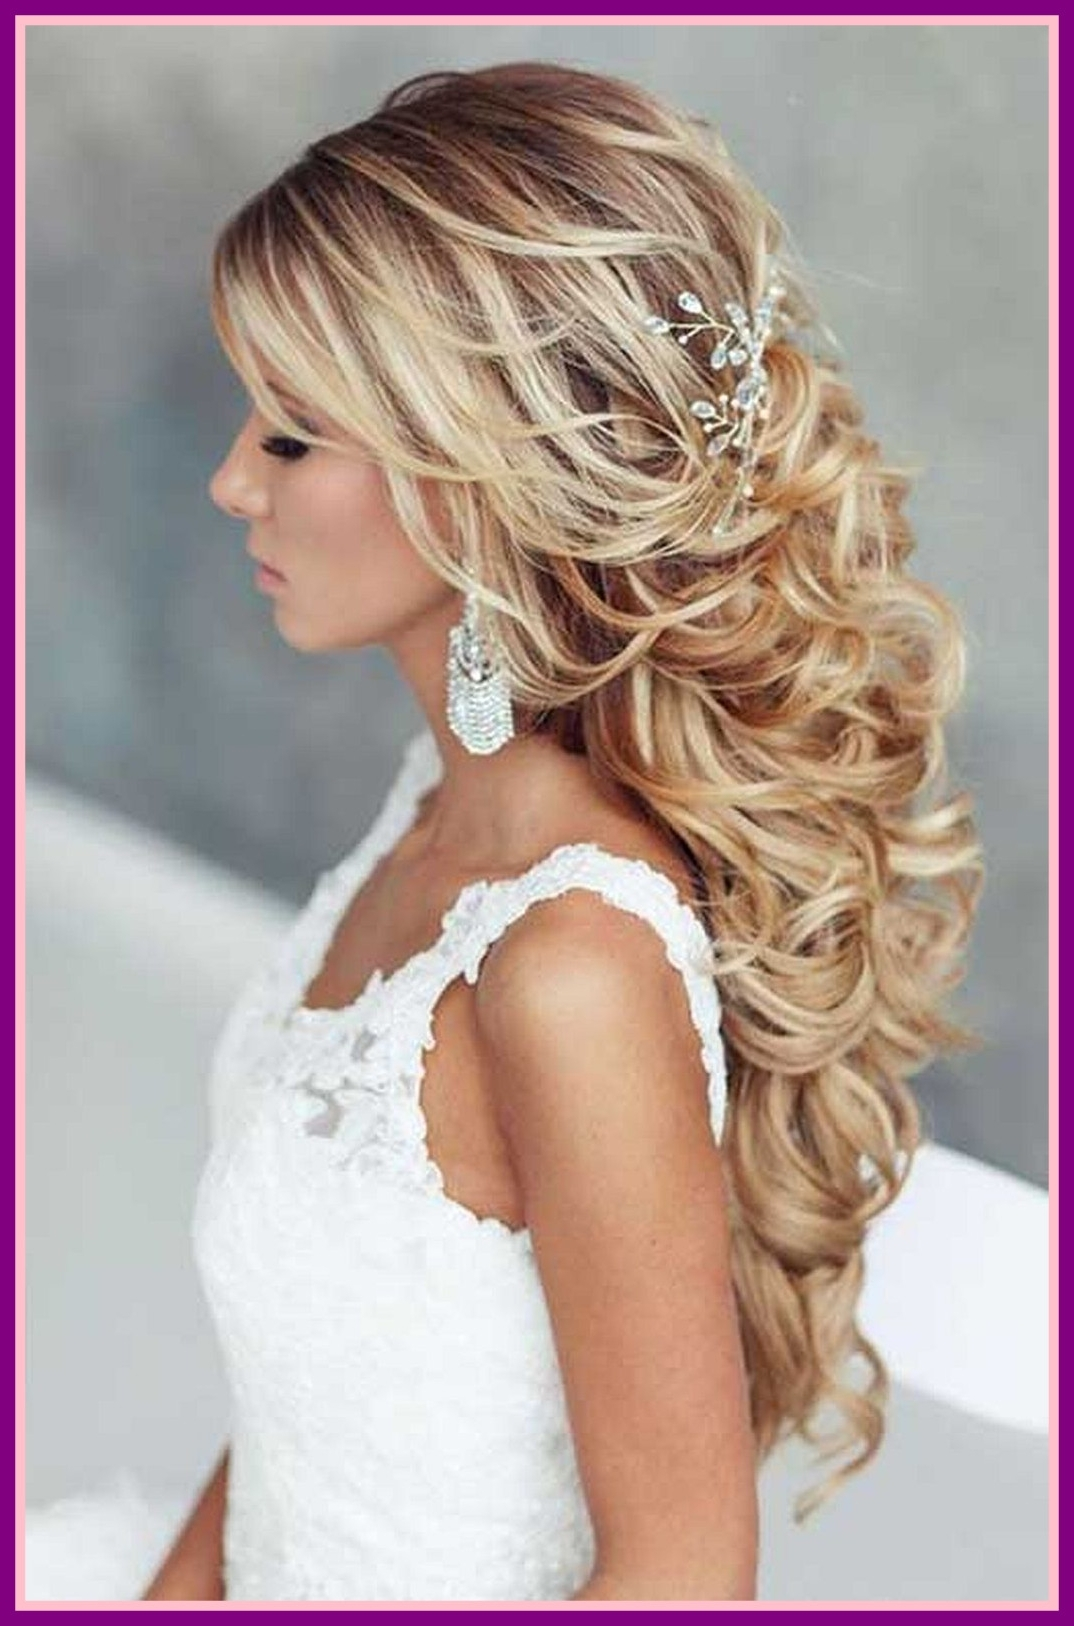 Astonishing Hairstyle Idea For Your Wedding Pic Of Long Curly Hair For Latest Wedding Hairstyles For Long Curly Hair (View 10 of 15)